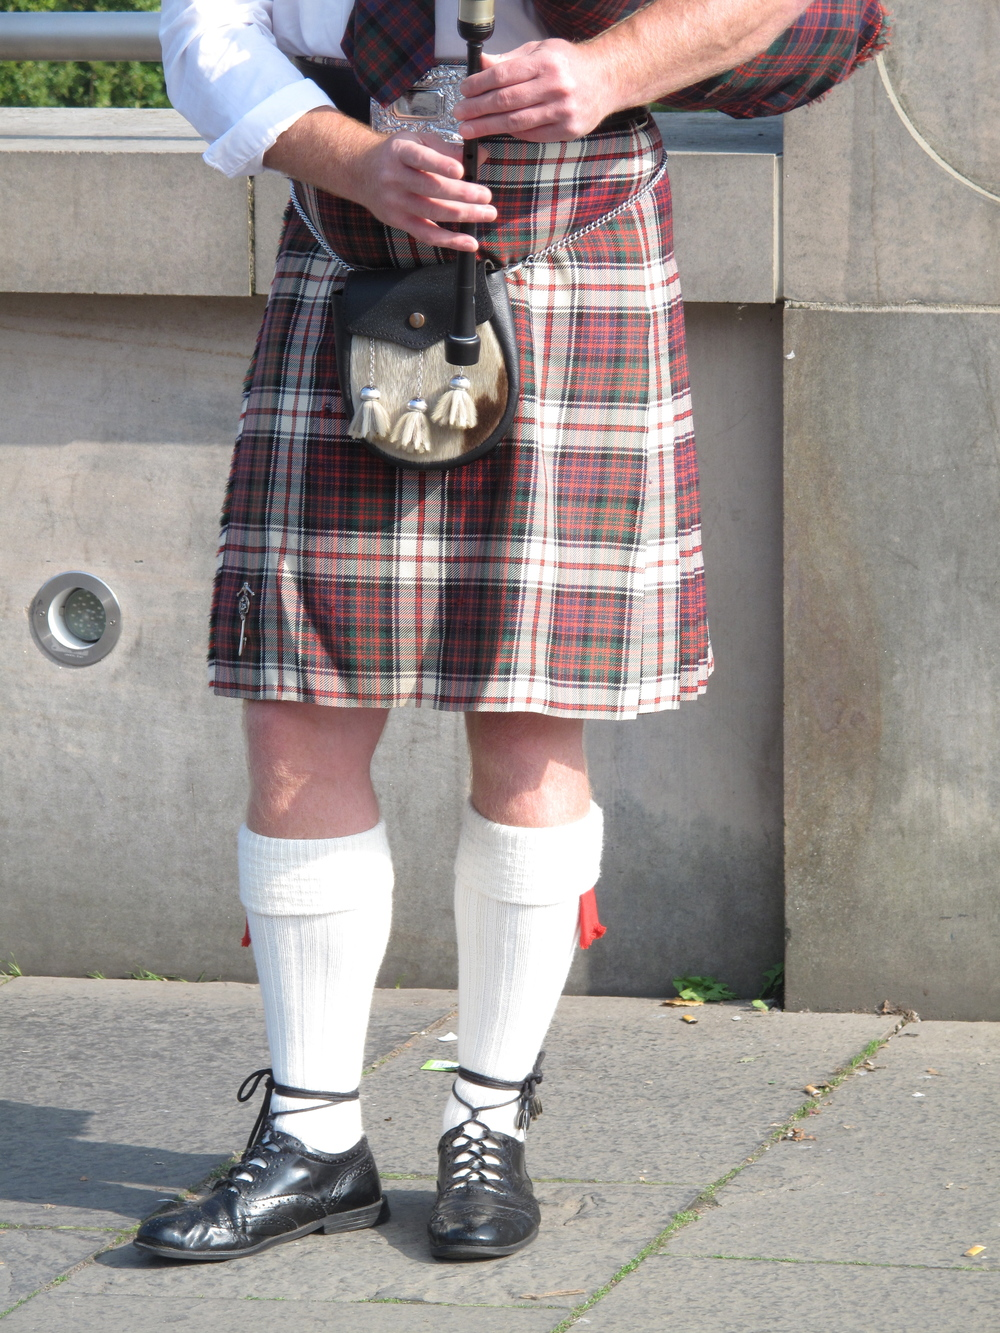 Kilt of a bagpiper, Edinburgh.